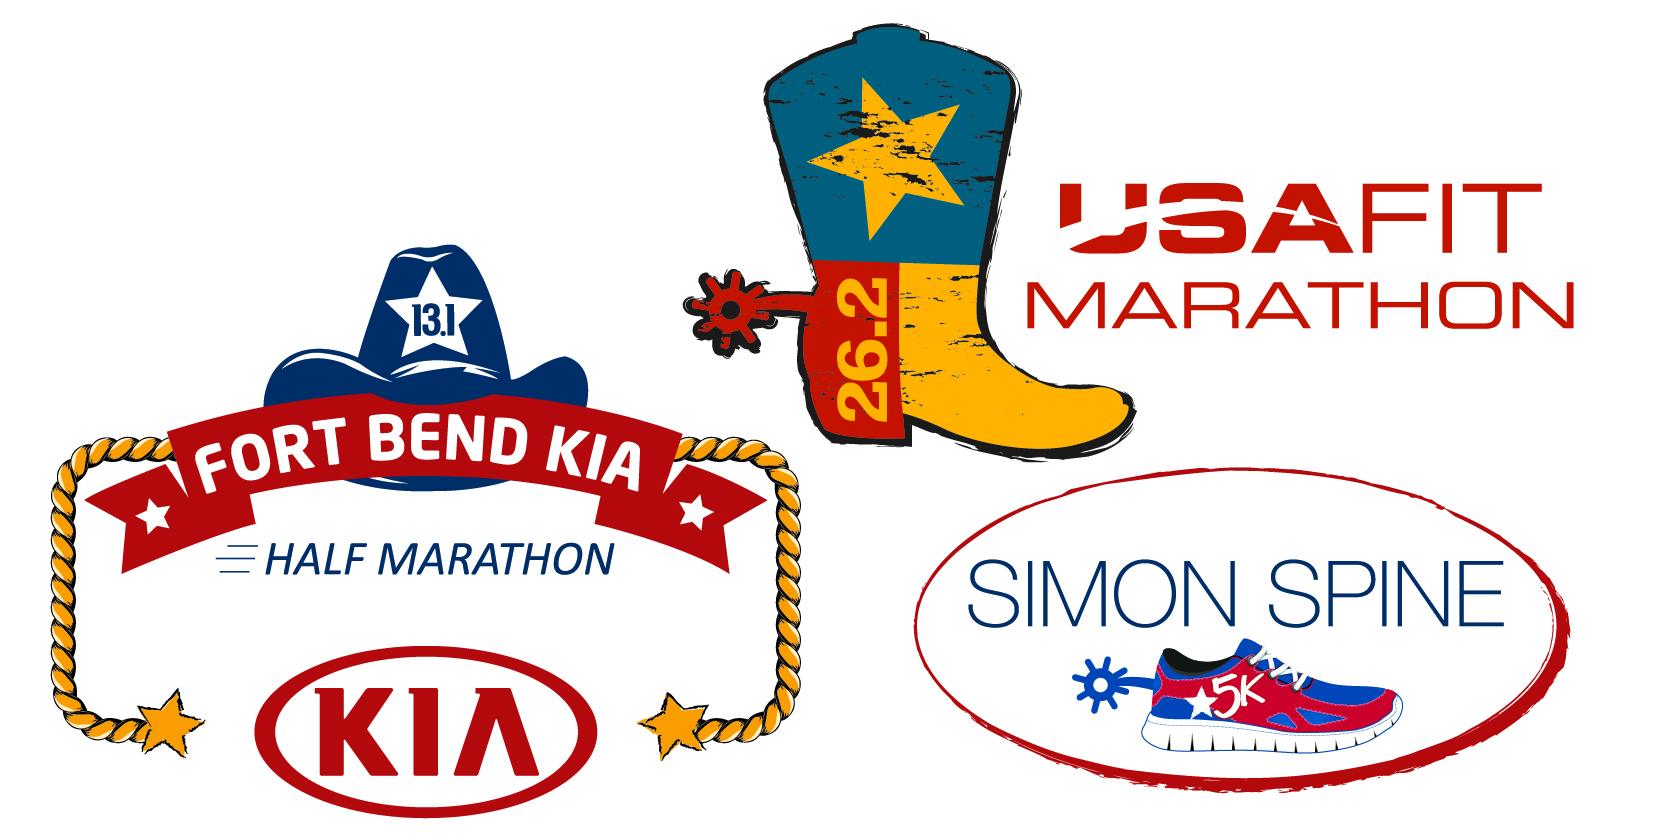 2020 USA Fit Marathon, Fort Bend KIA Half Marathon, Simon Spine 5K